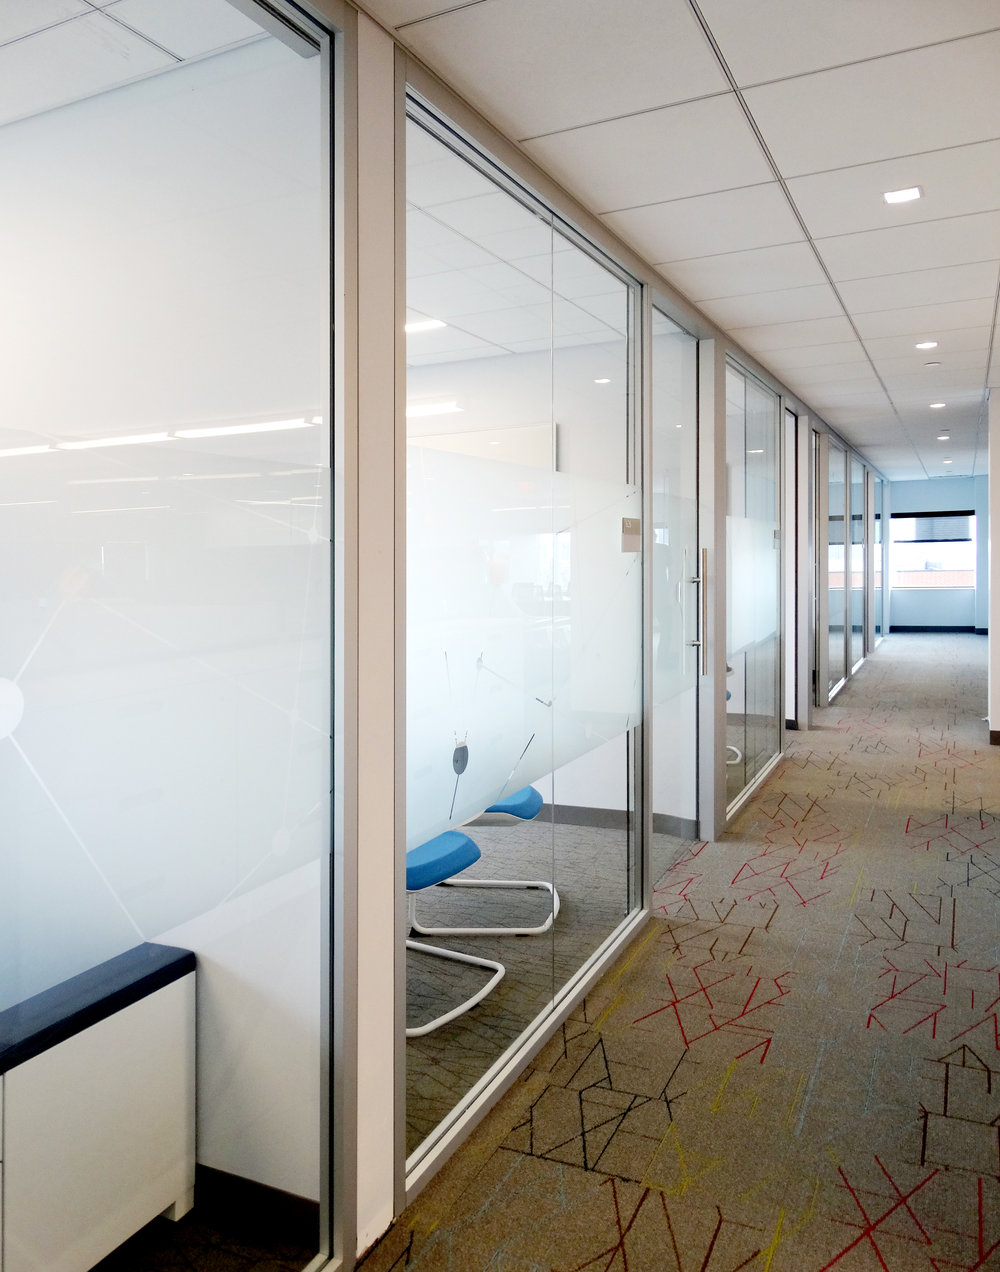 Litespace Glass Office Aluminum Framed Run - Spaceworks AI.jpg